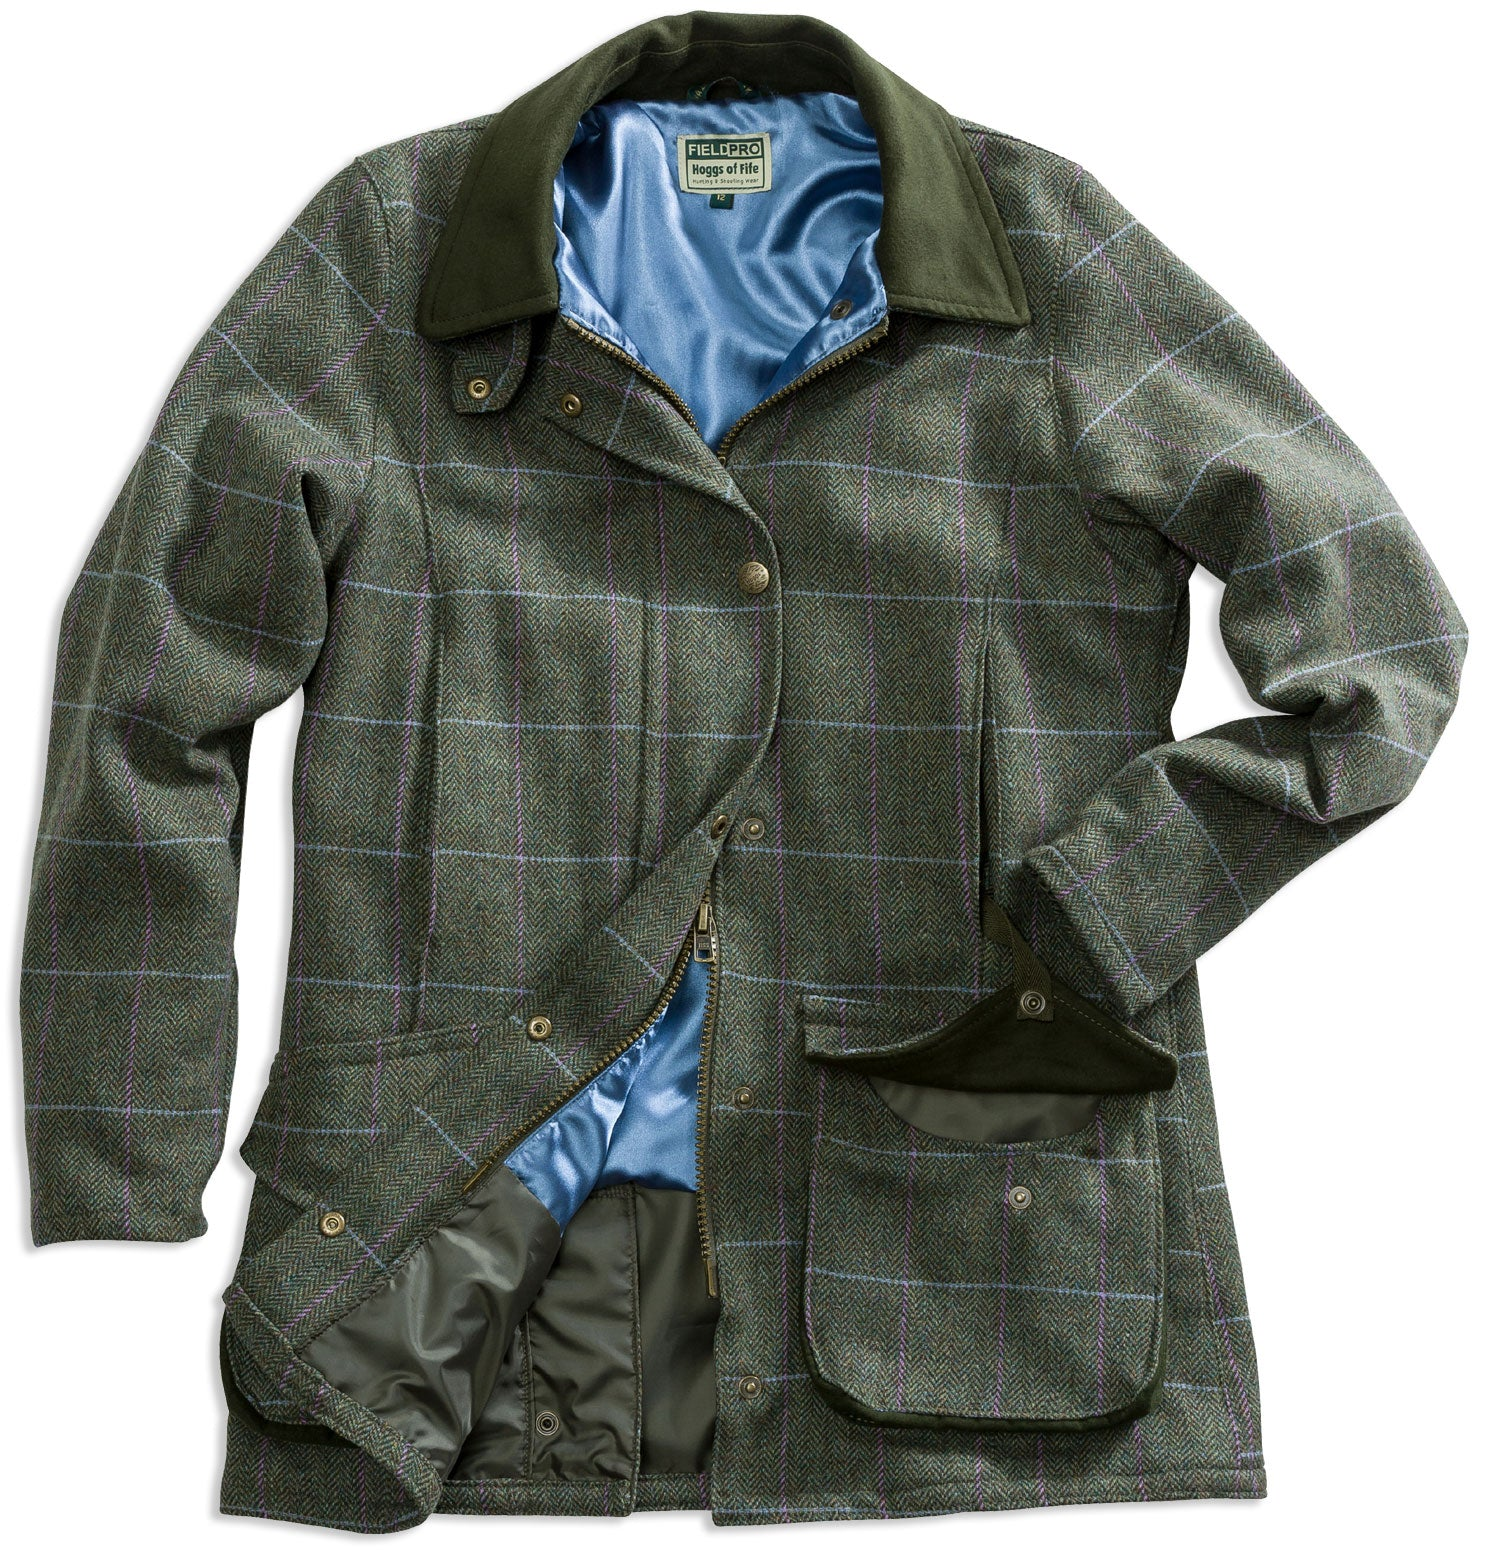 a1f53f0869093 Hoggs of Fife Albany Ladies Tweed Shooting Jacket – Hollands Country  Clothing